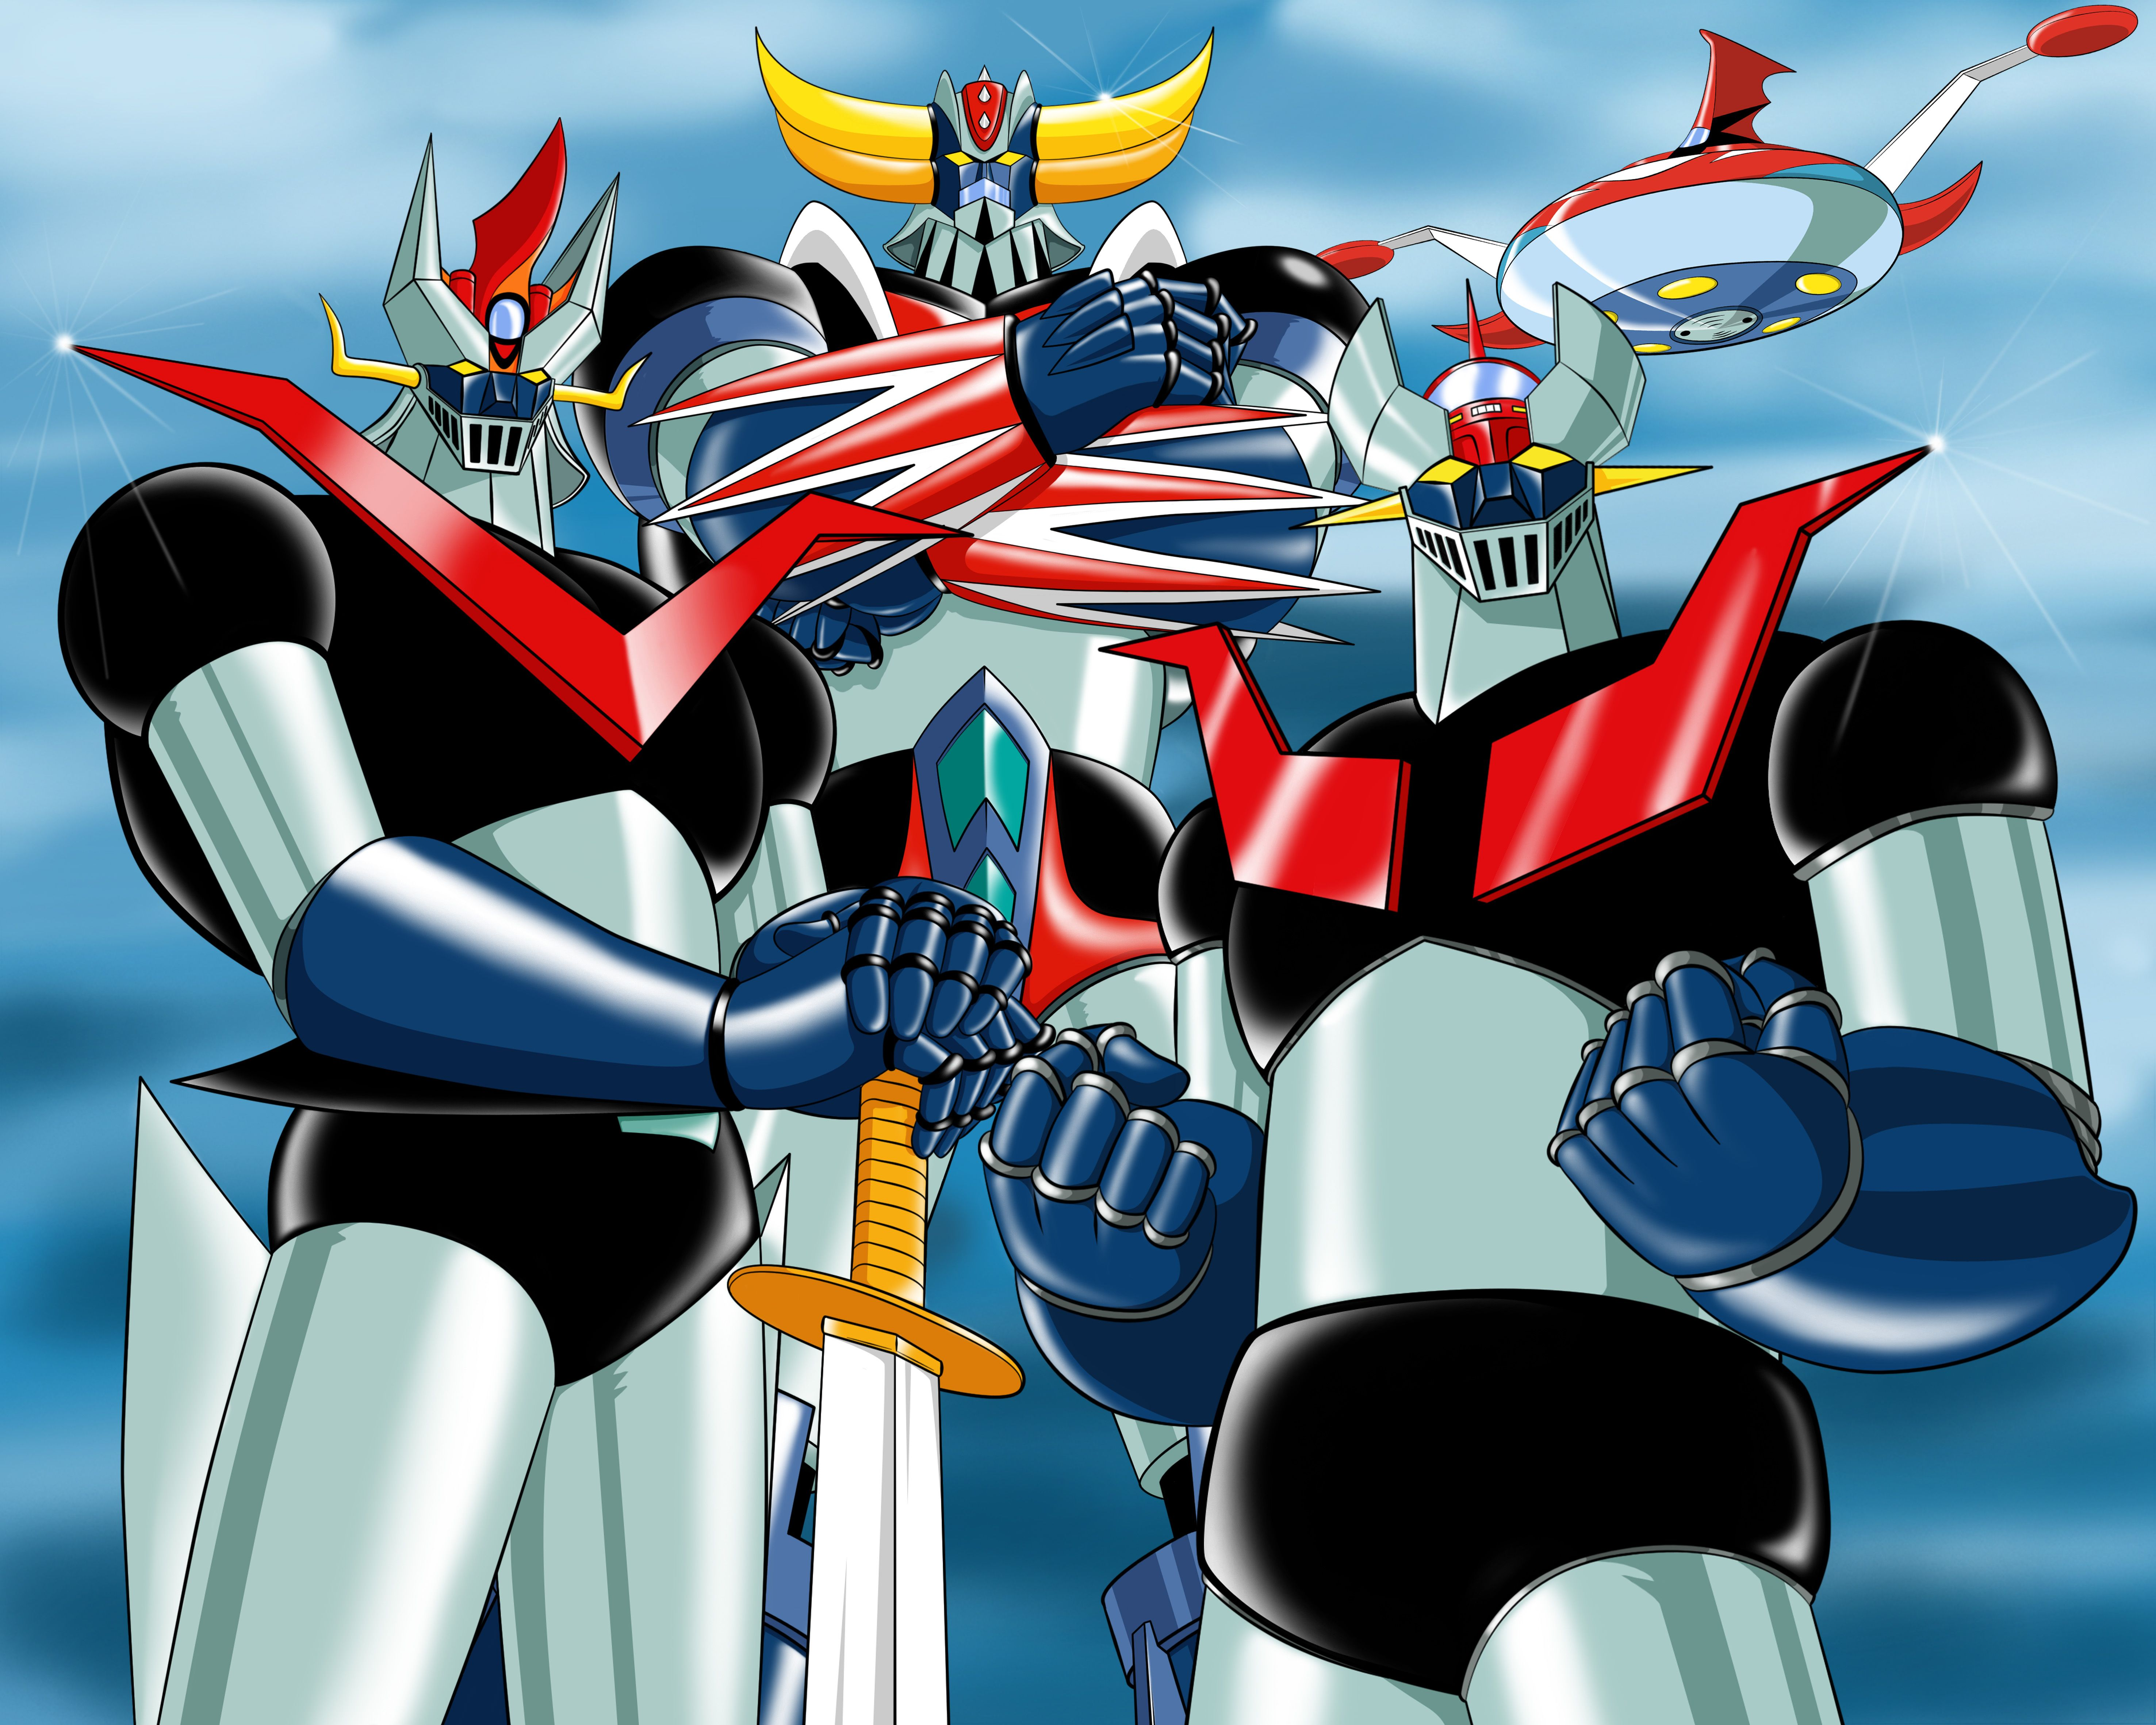 Mazinger great grendizer robots and mech